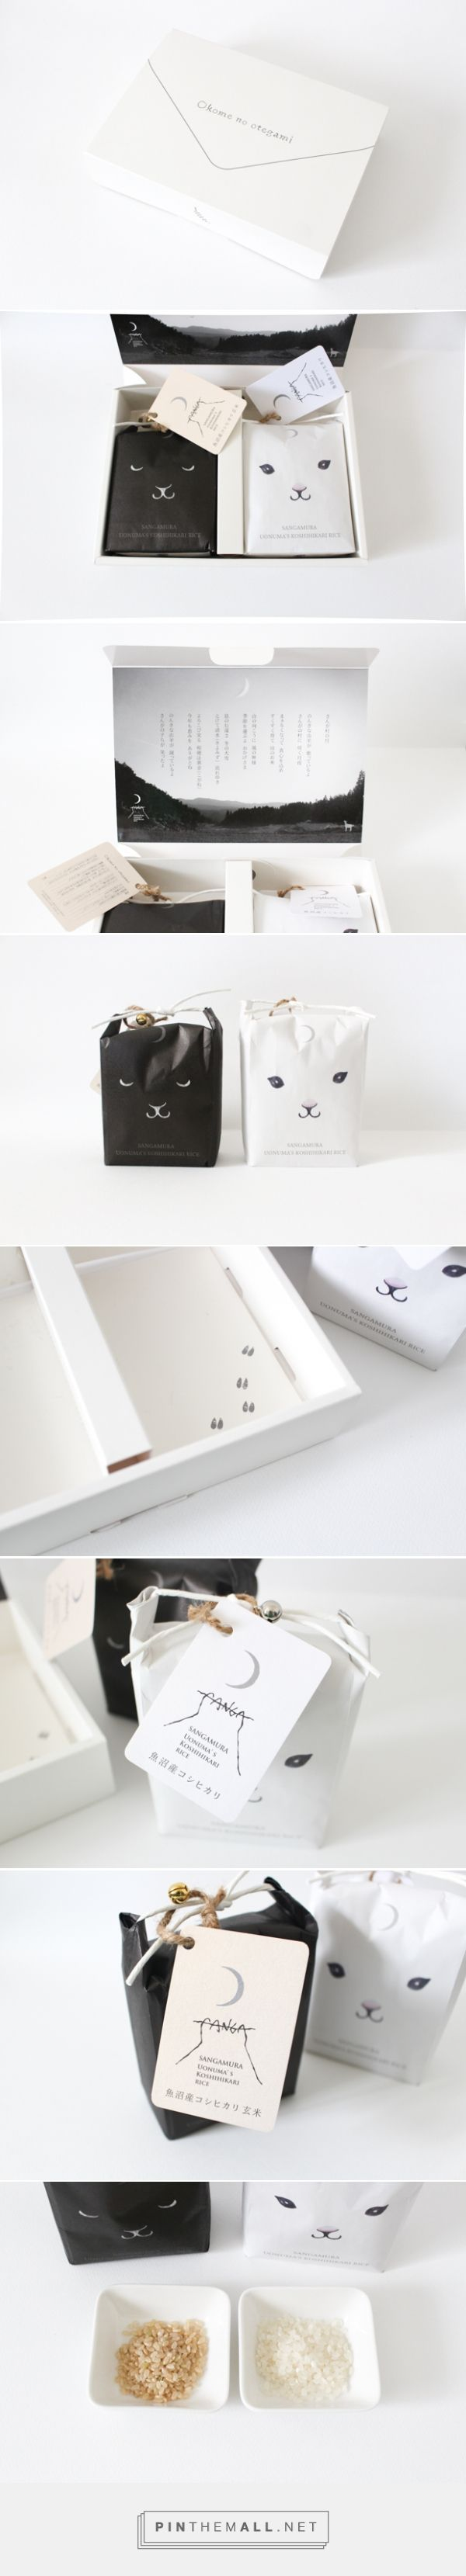 Yagisan No Okome curated by Packaging Diva PD. The cutest rice packaging.